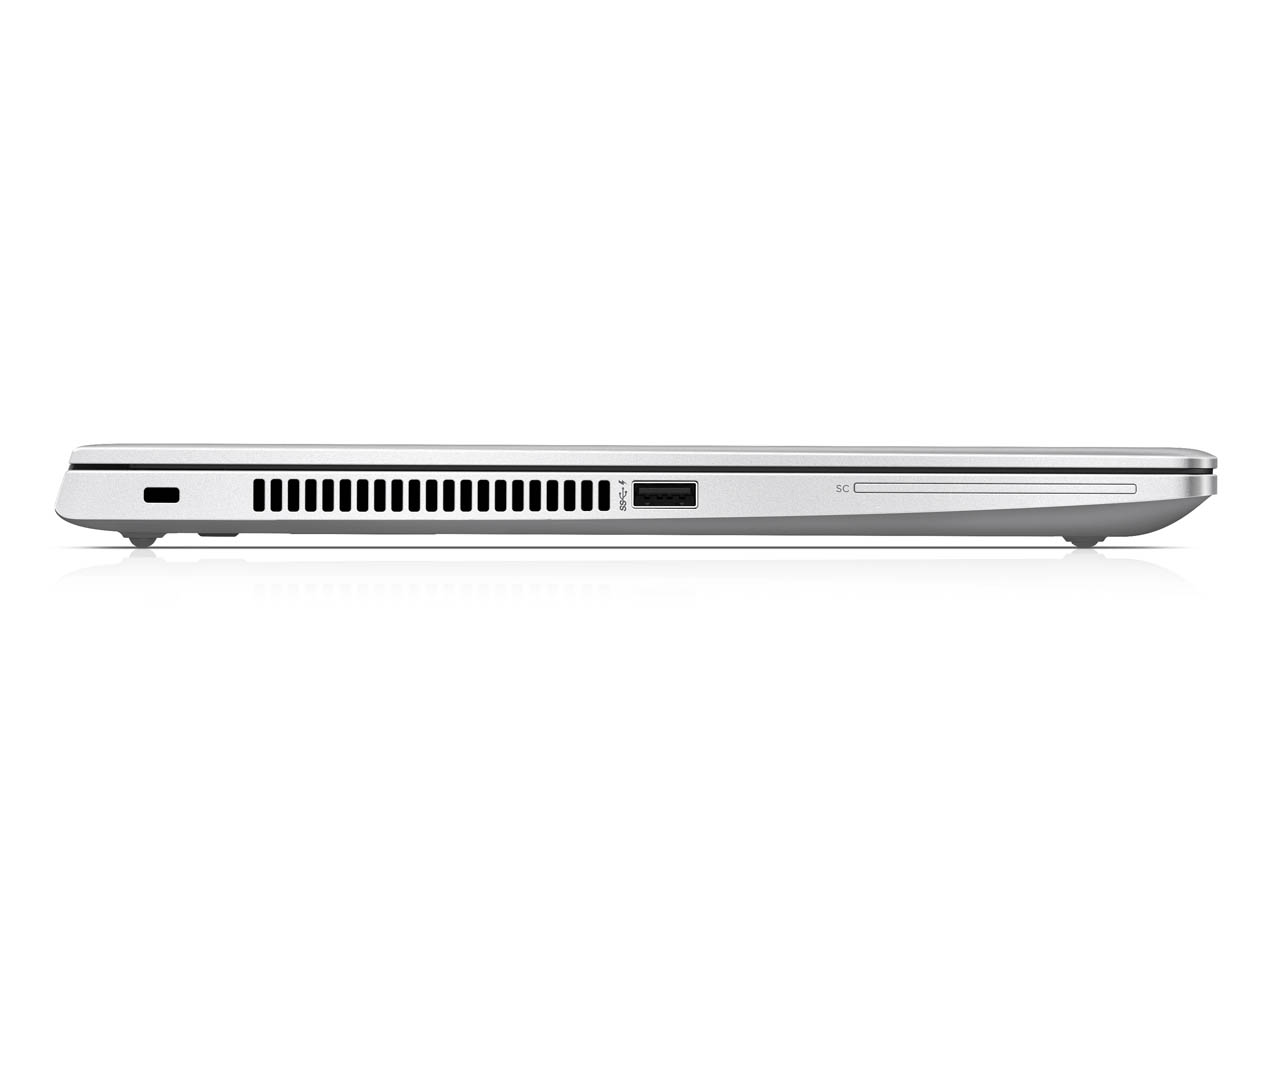 HP annuncia gli EliteBook 700 G6 e l'HP mt45 Mobile Thin Client 4